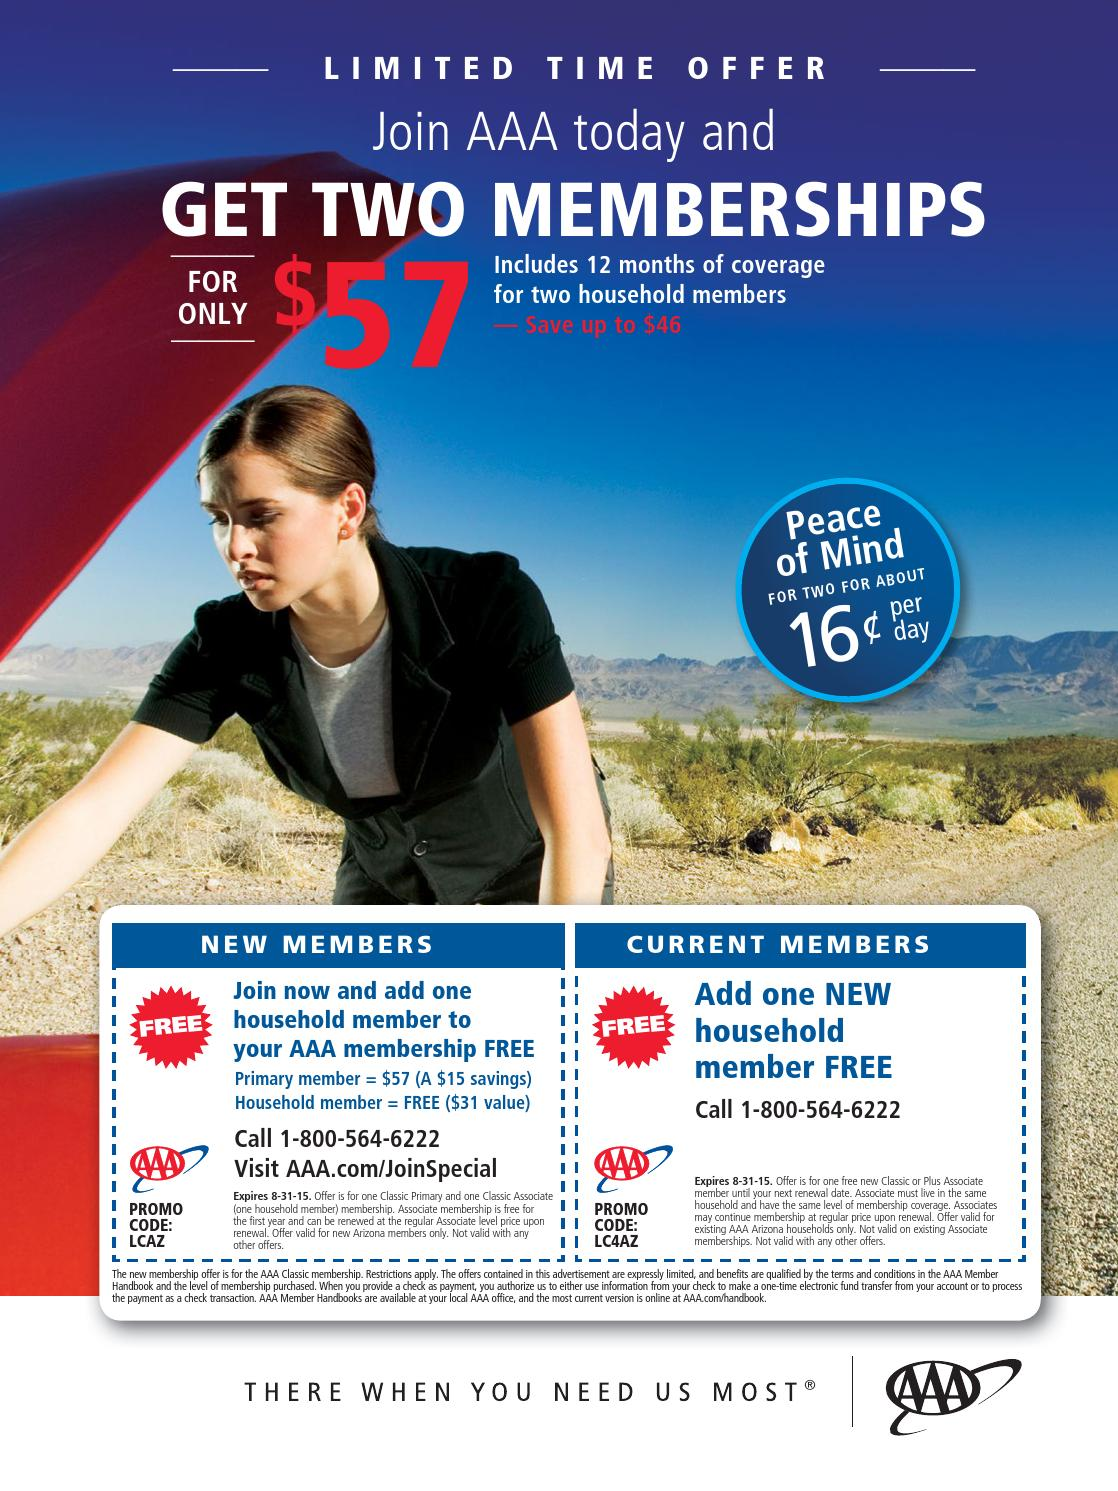 How to use a AAA coupon AAA offers a club membership that allows you to get miles of free towing, free emergency fuel, and other money-saving benefits. The company offers a $5 discount when you sign up for automatic credit card renewals. A membership with AAA also entitles you to savings on travel, dining, and shopping with other retailers.